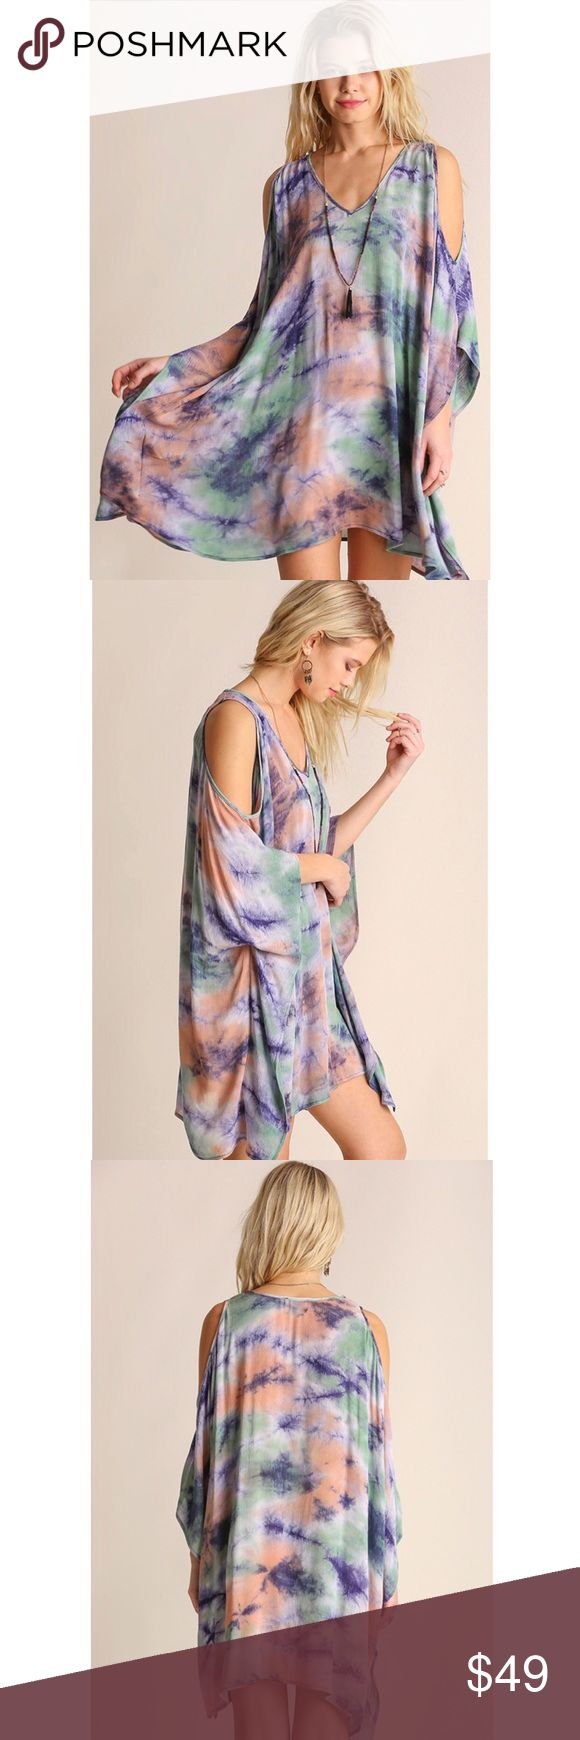 🆕 Just in! Festival poncho dress! Festival poncho dress in tie dye! Shoulder cut out. 55% cotton and 45% polyester. The perfect festival, vacation, beach, pool, and/or Sunday funday dress! 🌼🌈🌻☀️🌎💐 Dresses